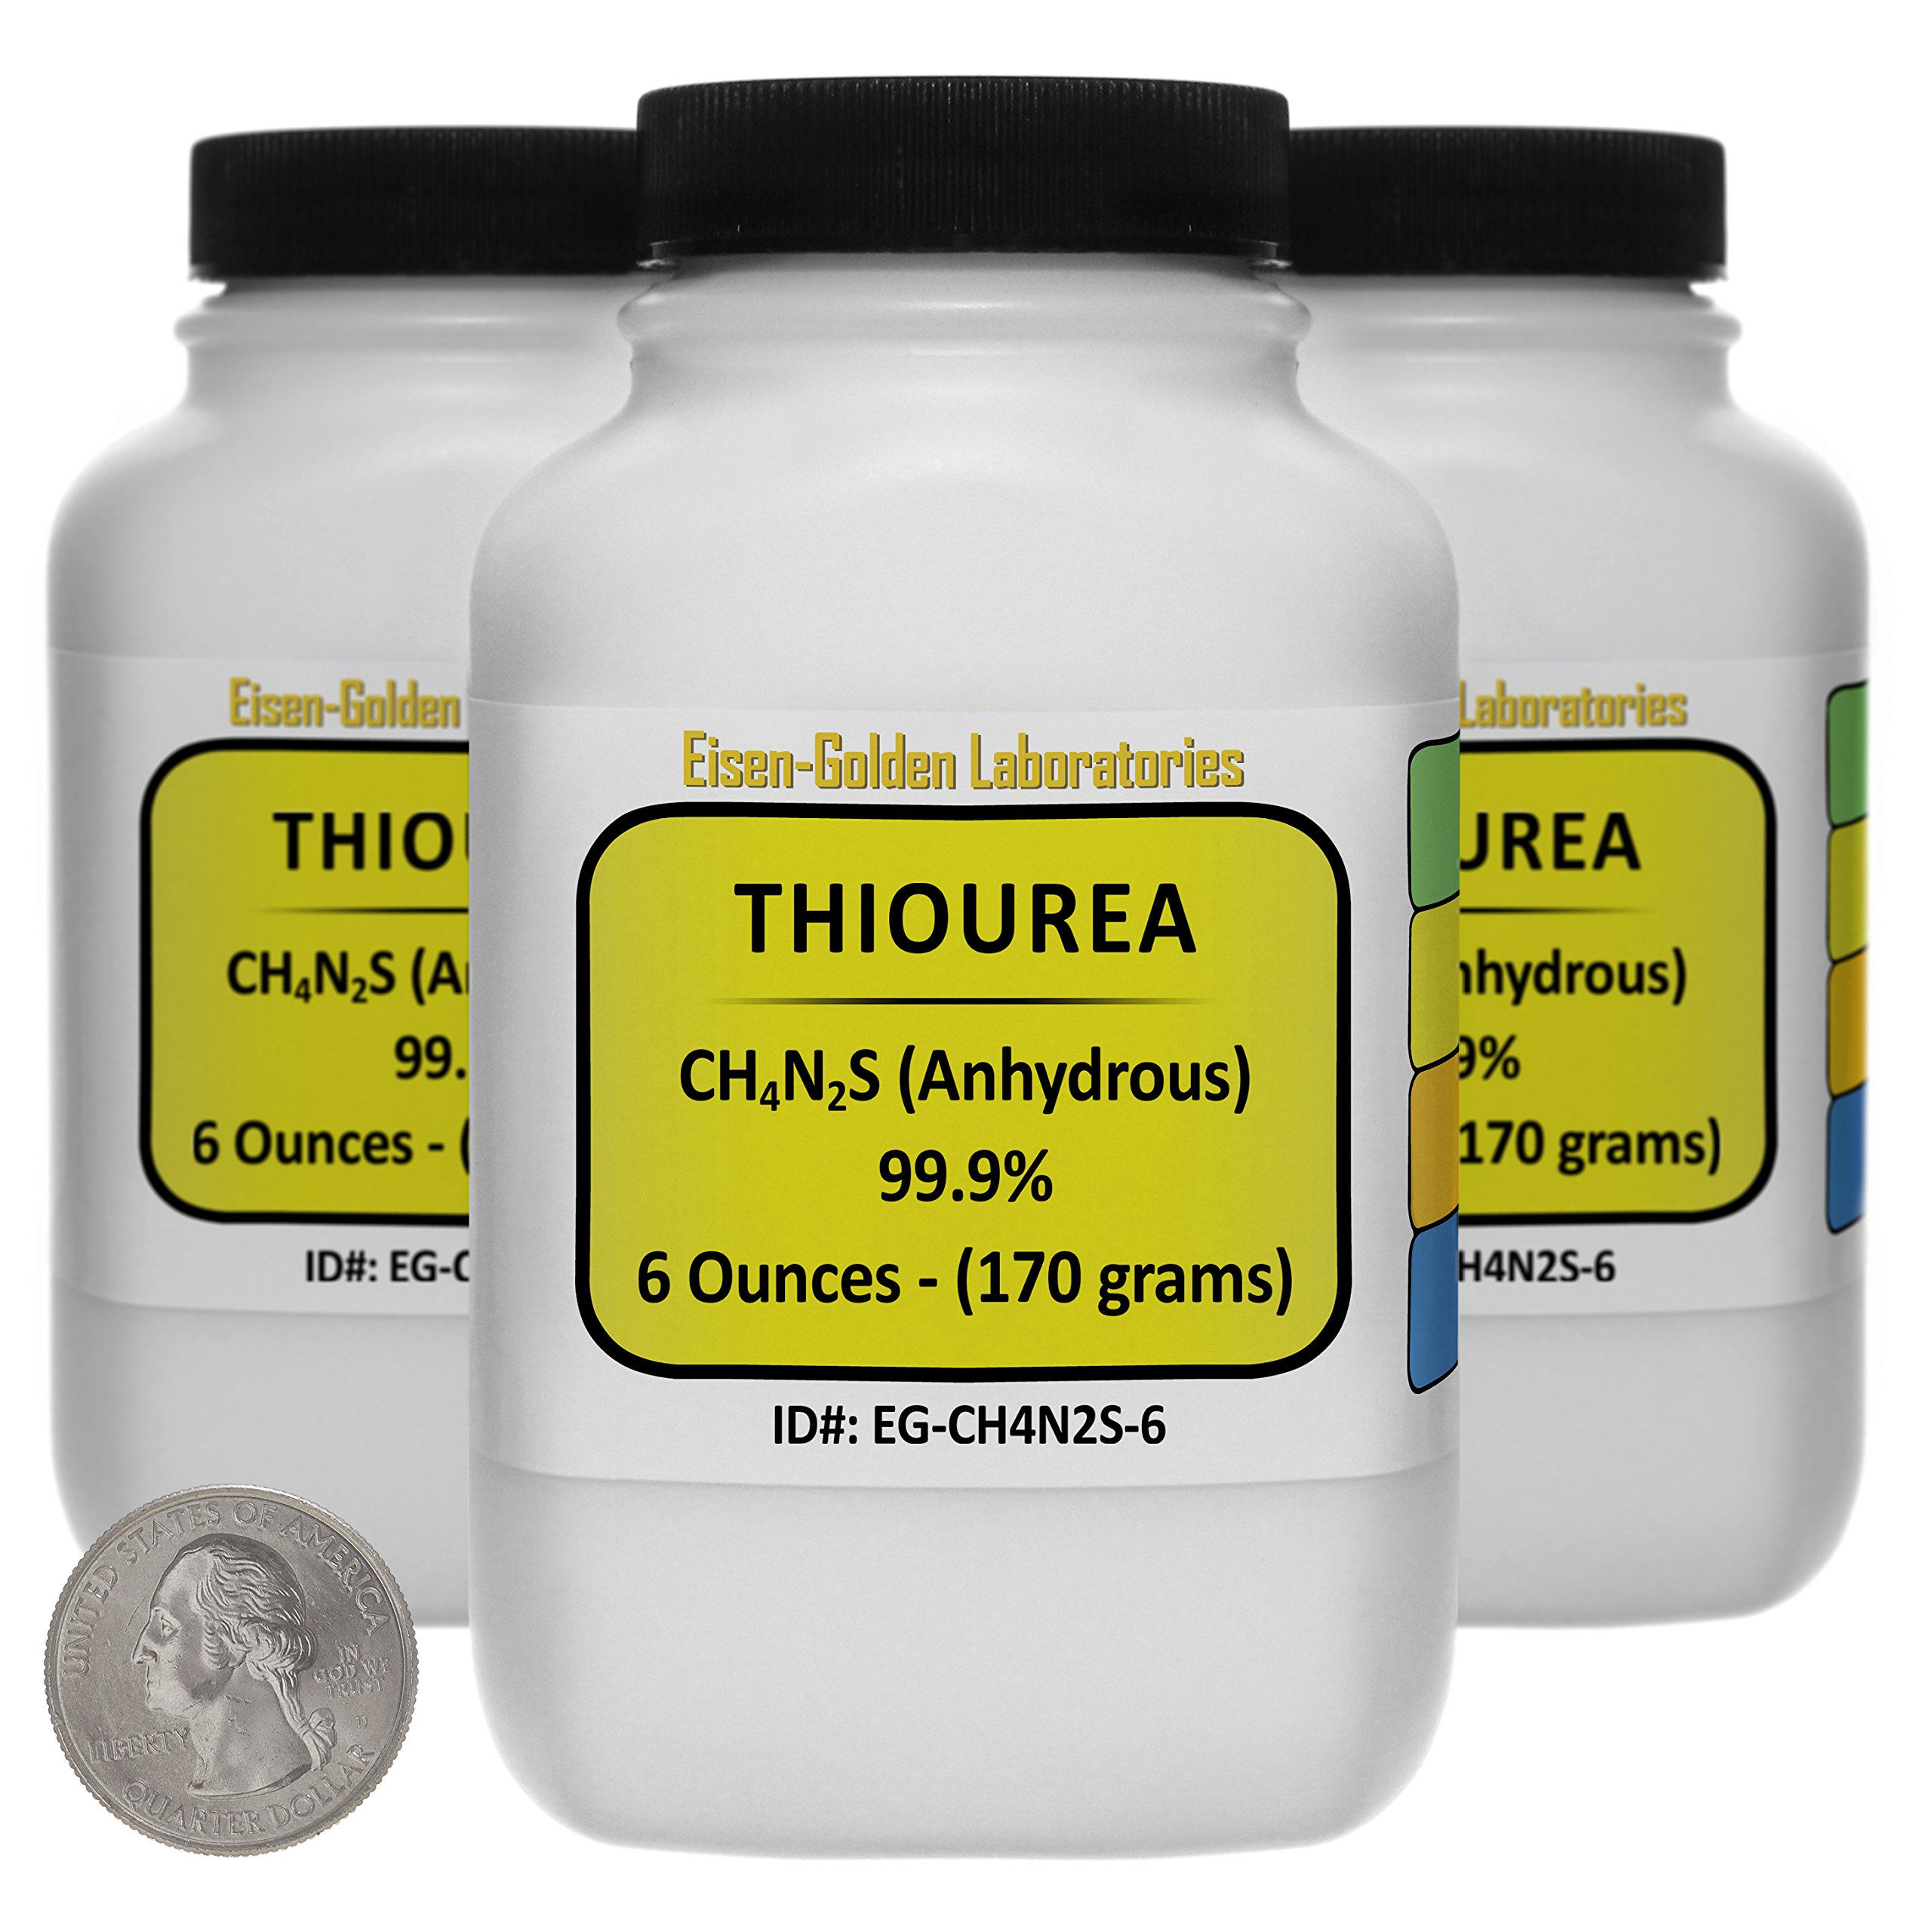 Thiourea [SC(NH2)2] 99.9% ACS Grade Crystals 1 Lb in Three Space-Saver Bottles USA